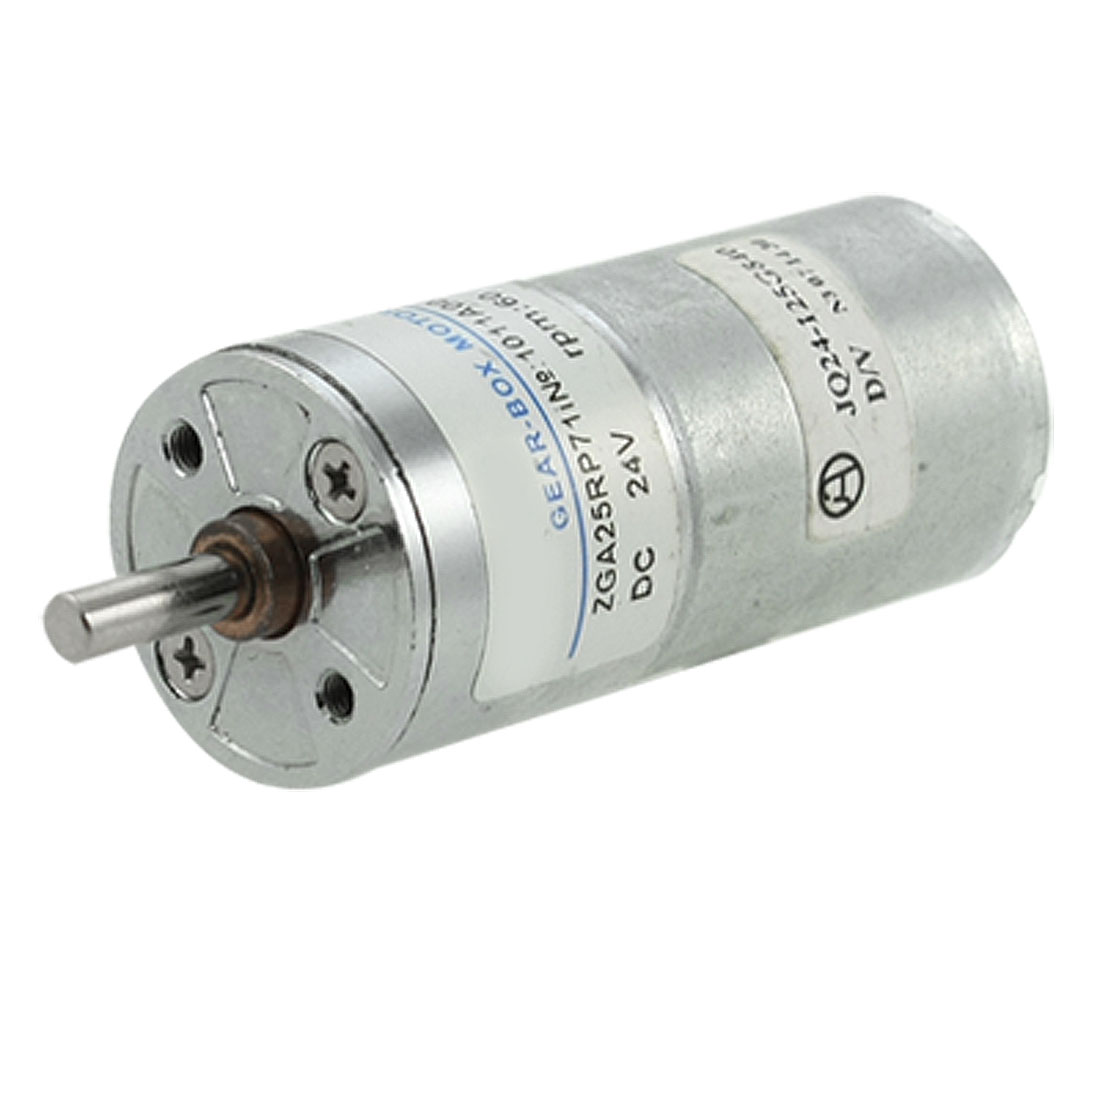 4mm Diameter Output Shaft 24V 0.13A DC Gear Motor 60RPM